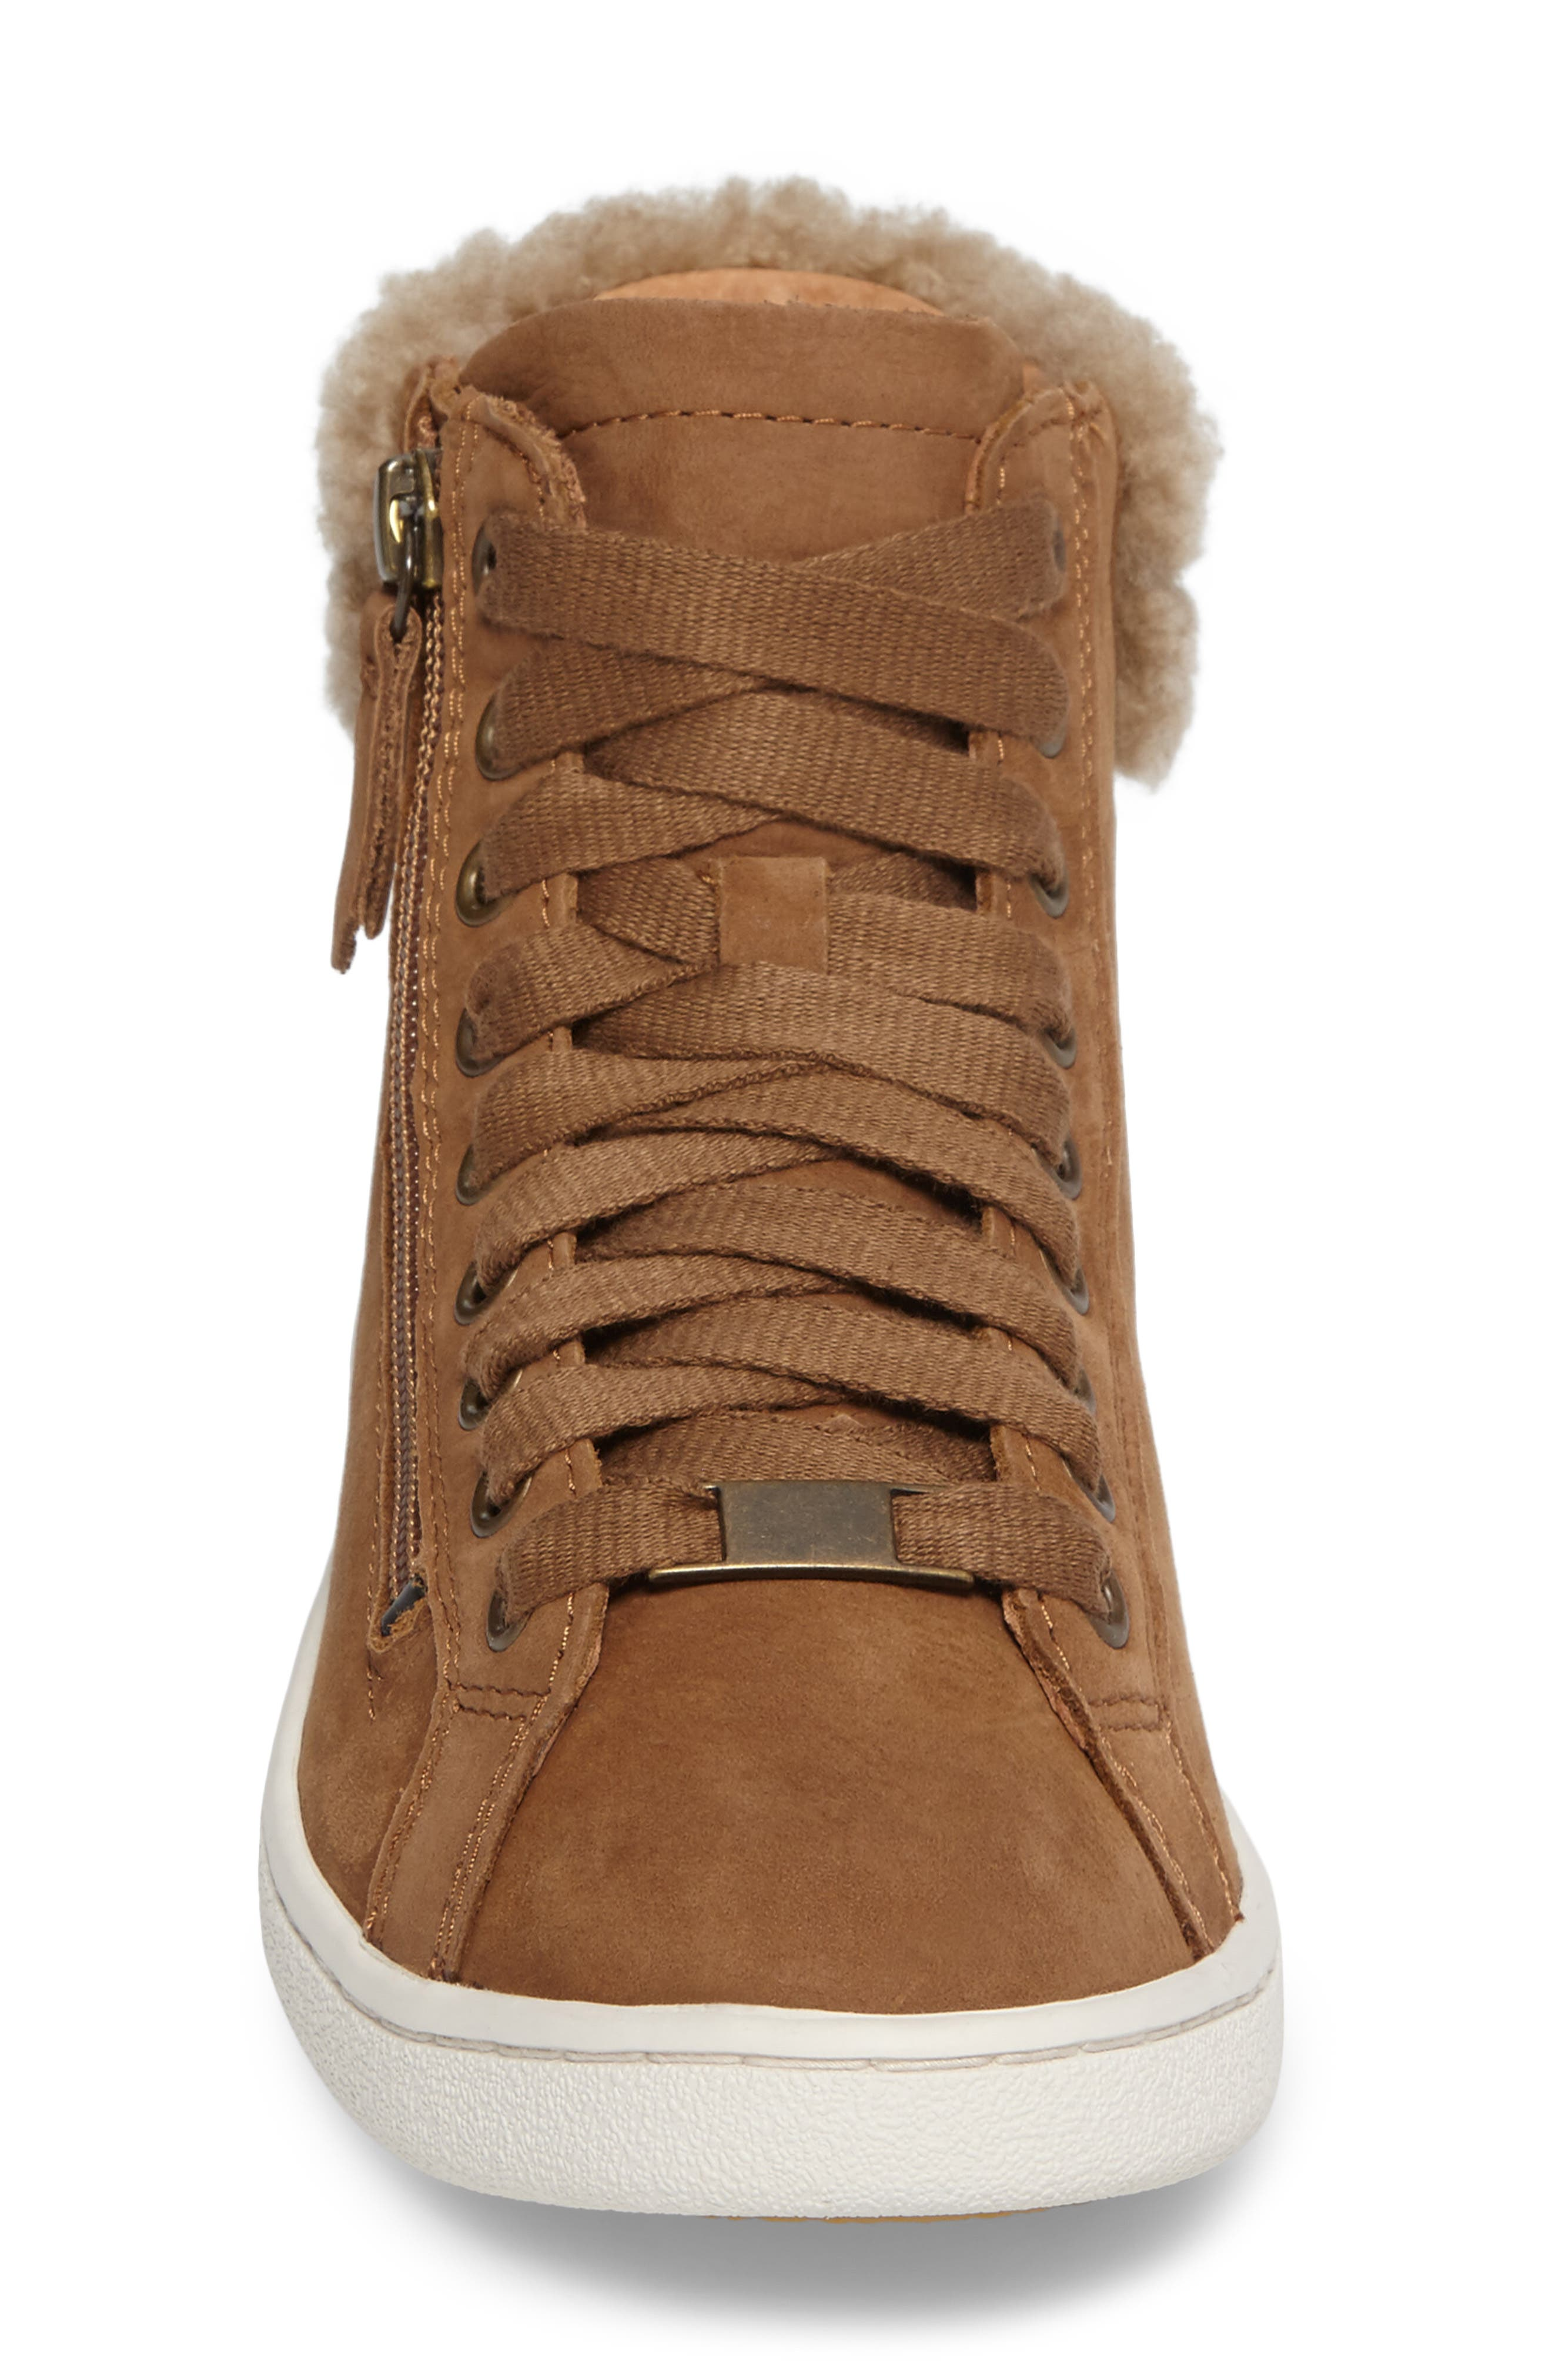 Olive Genuine Shearling Cuff Sneaker,                             Alternate thumbnail 4, color,                             219